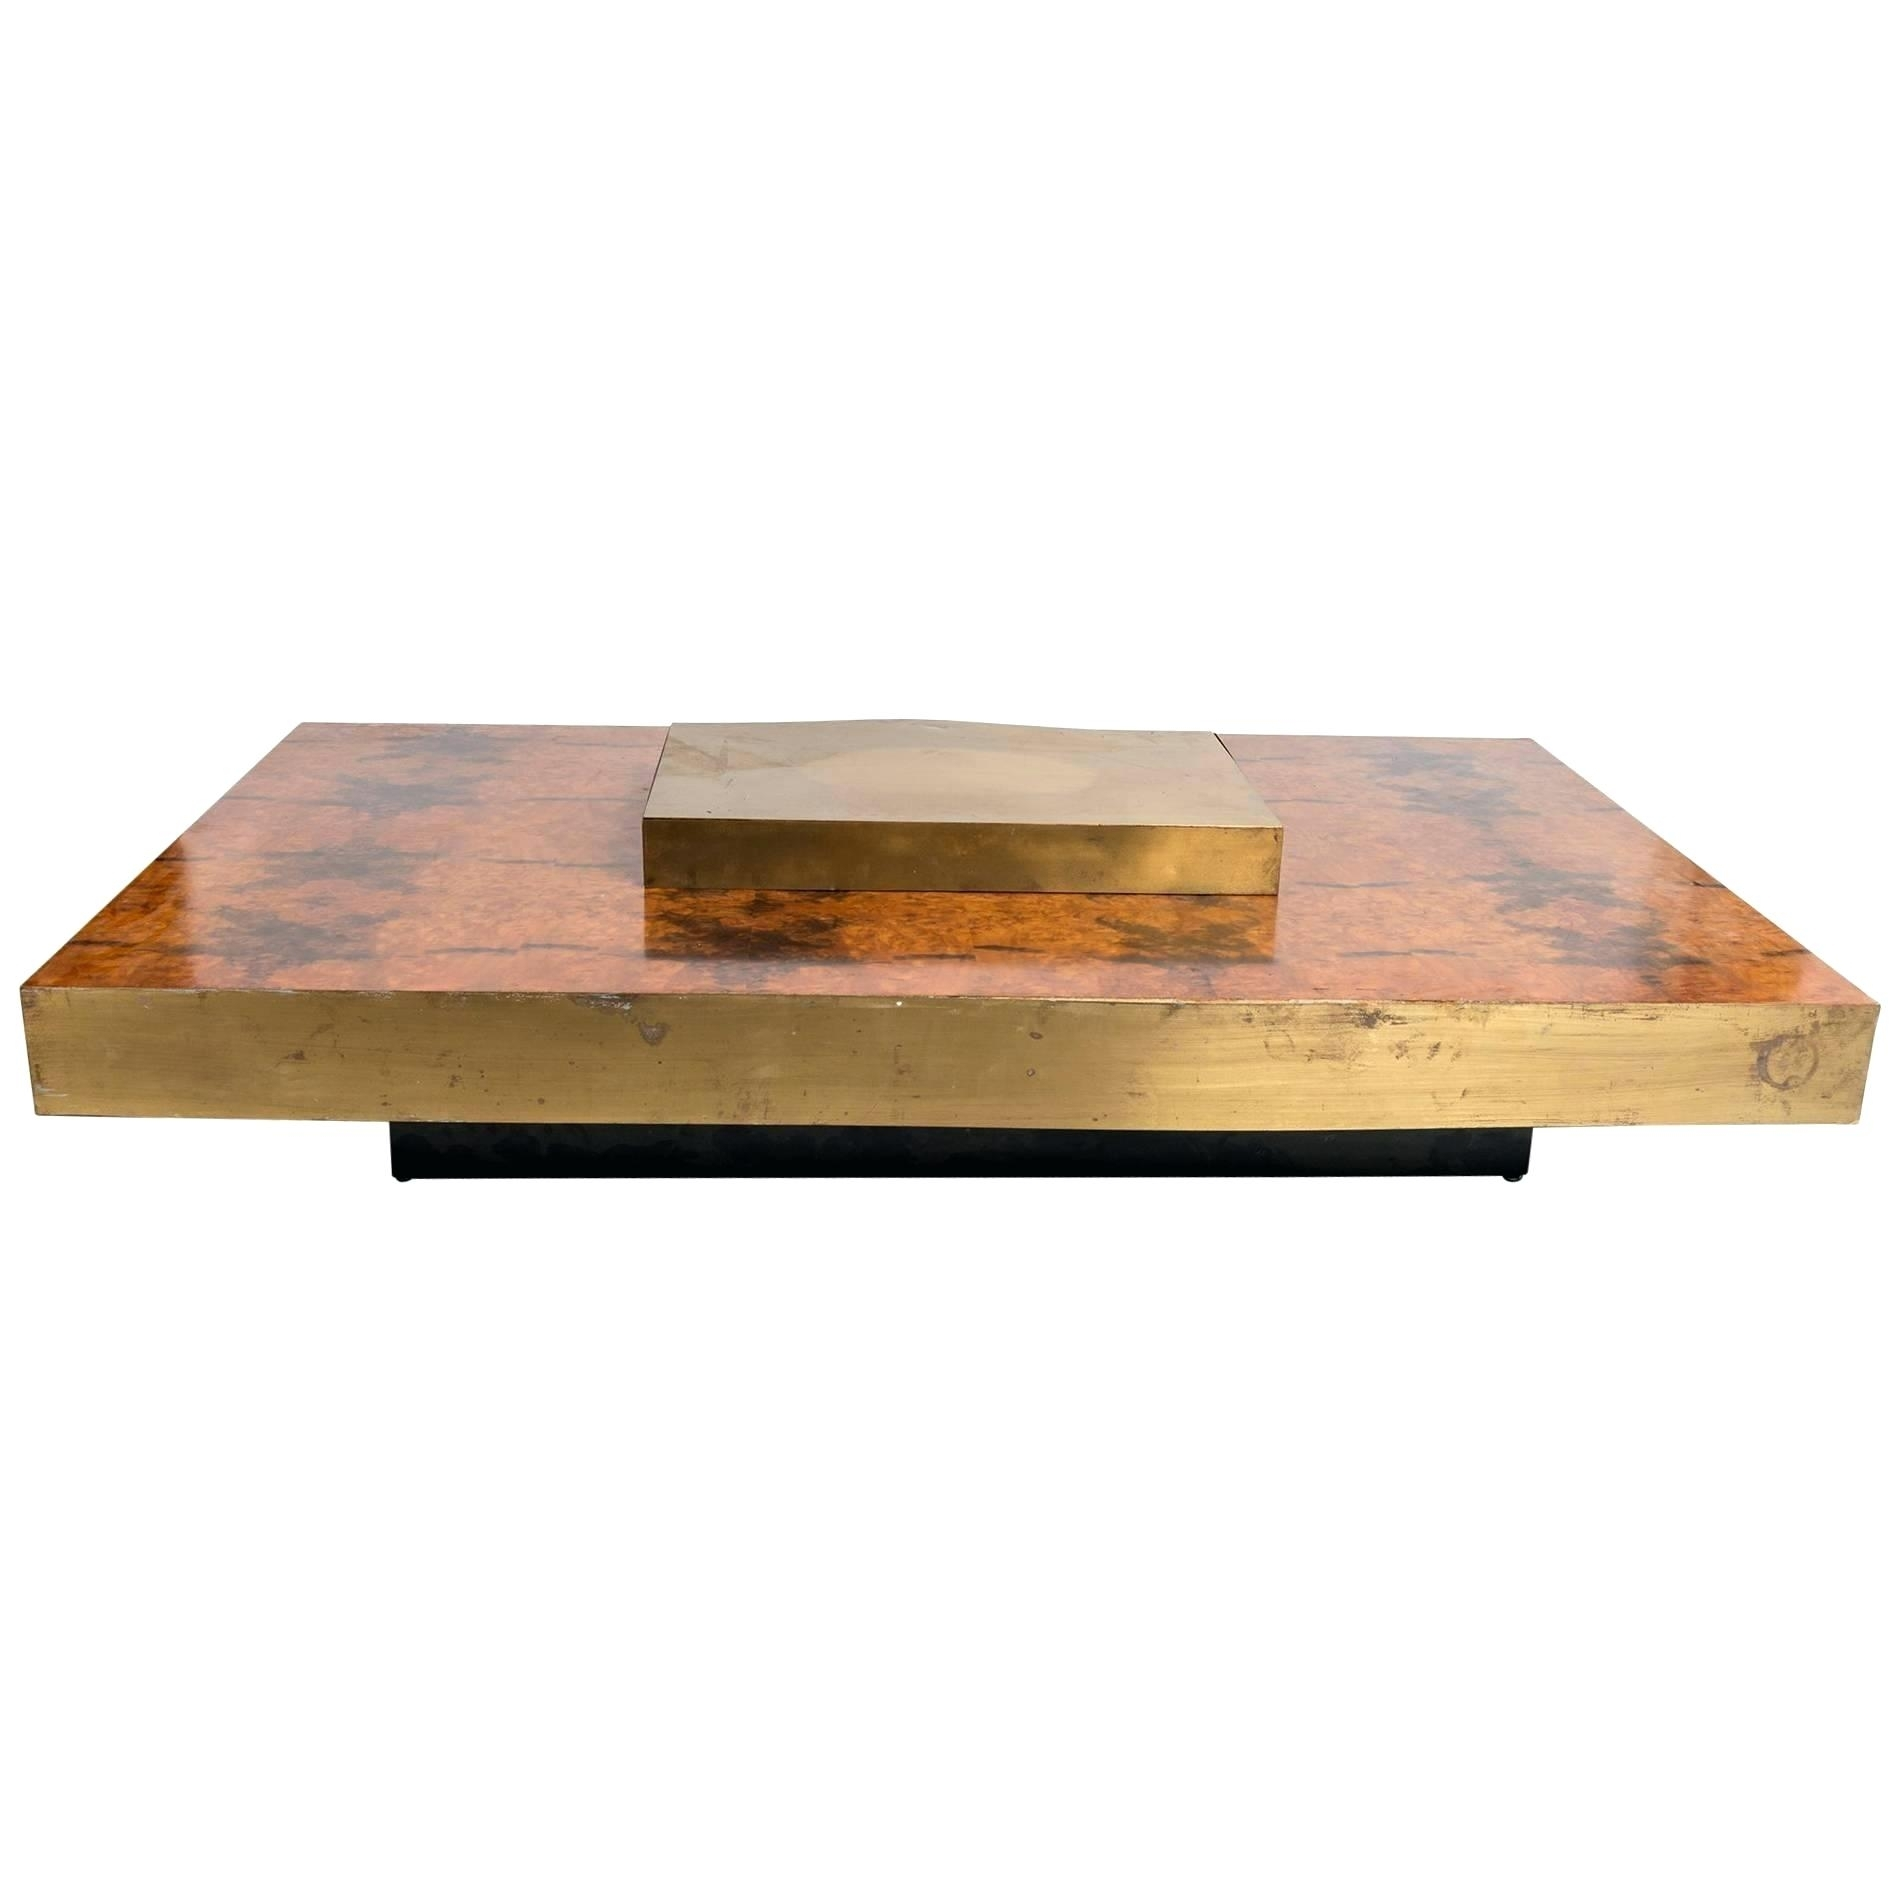 Brass And Wood Coffee Table Brass Wood Brushed Metal Coffee Table regarding Joni Brass And Wood Coffee Tables (Image 8 of 30)